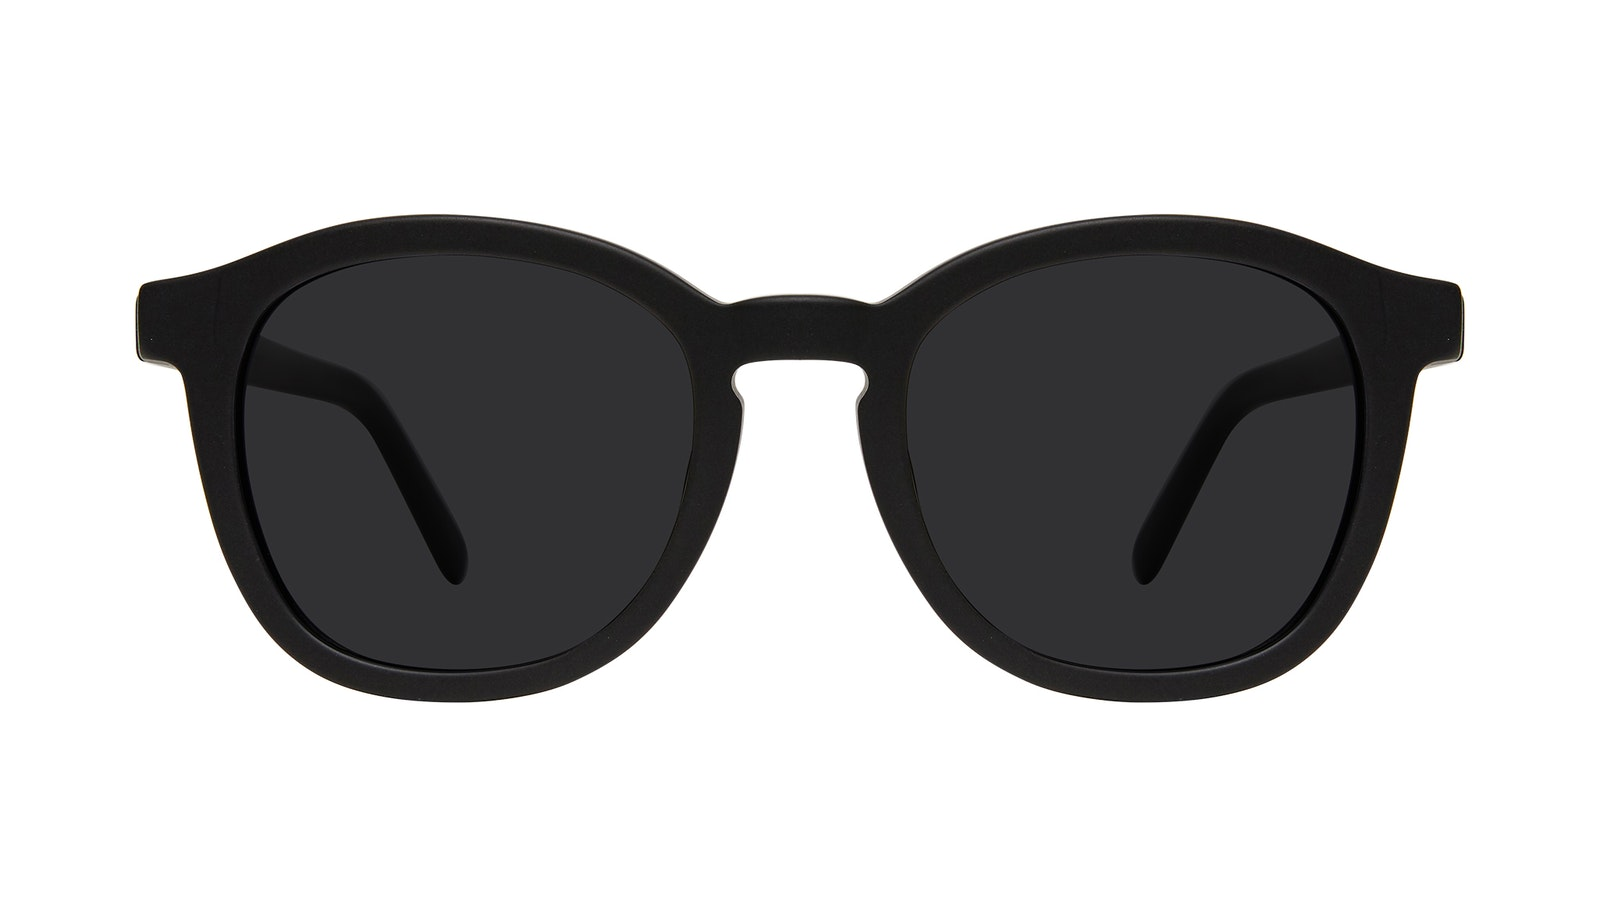 Affordable Fashion Glasses Round Sunglasses Men Script Matte Black